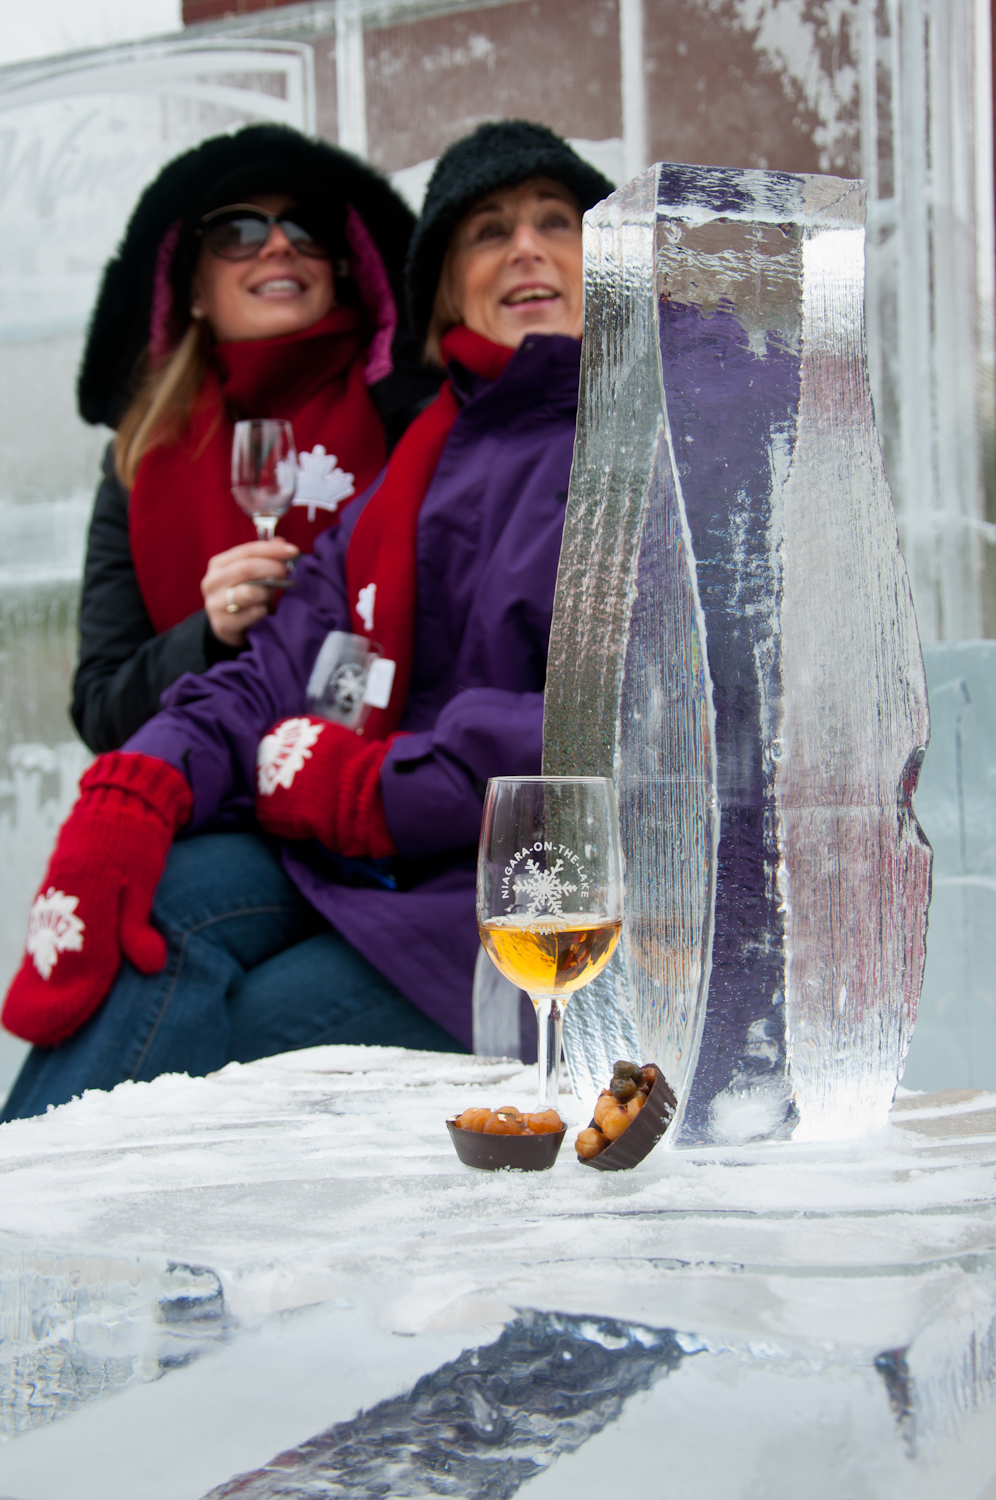 Cold or Warm, the Festival Continues - Credit Niagara Wine Festival